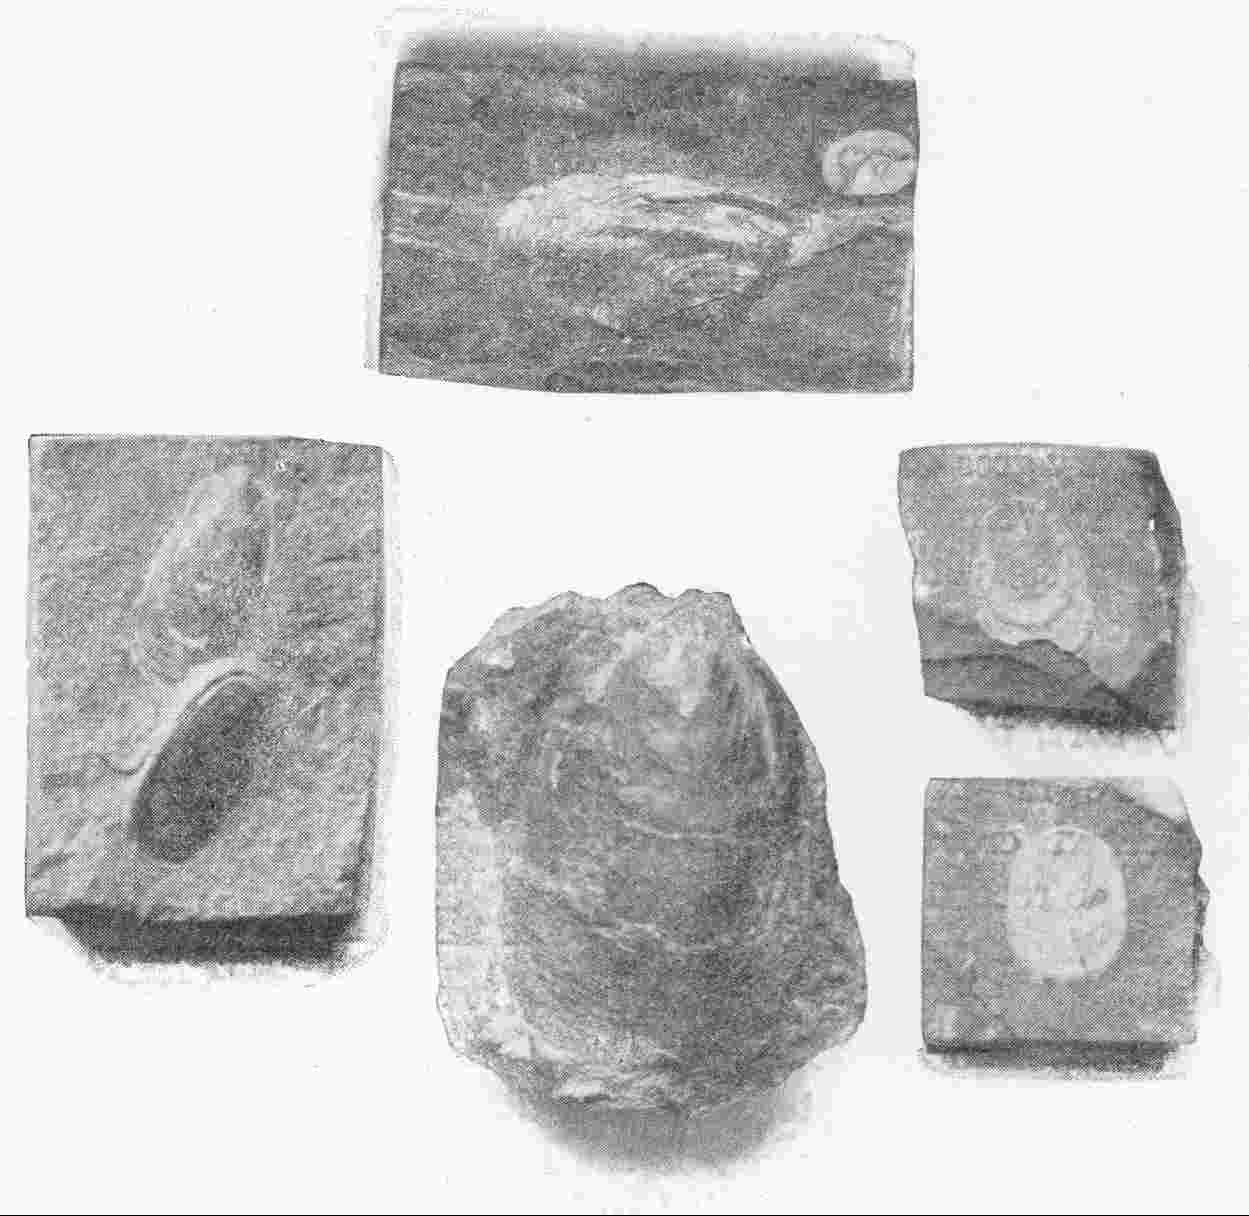 EARLY PALÆOLITHIC FOSSILS OF VARIOUS SPECIES OF